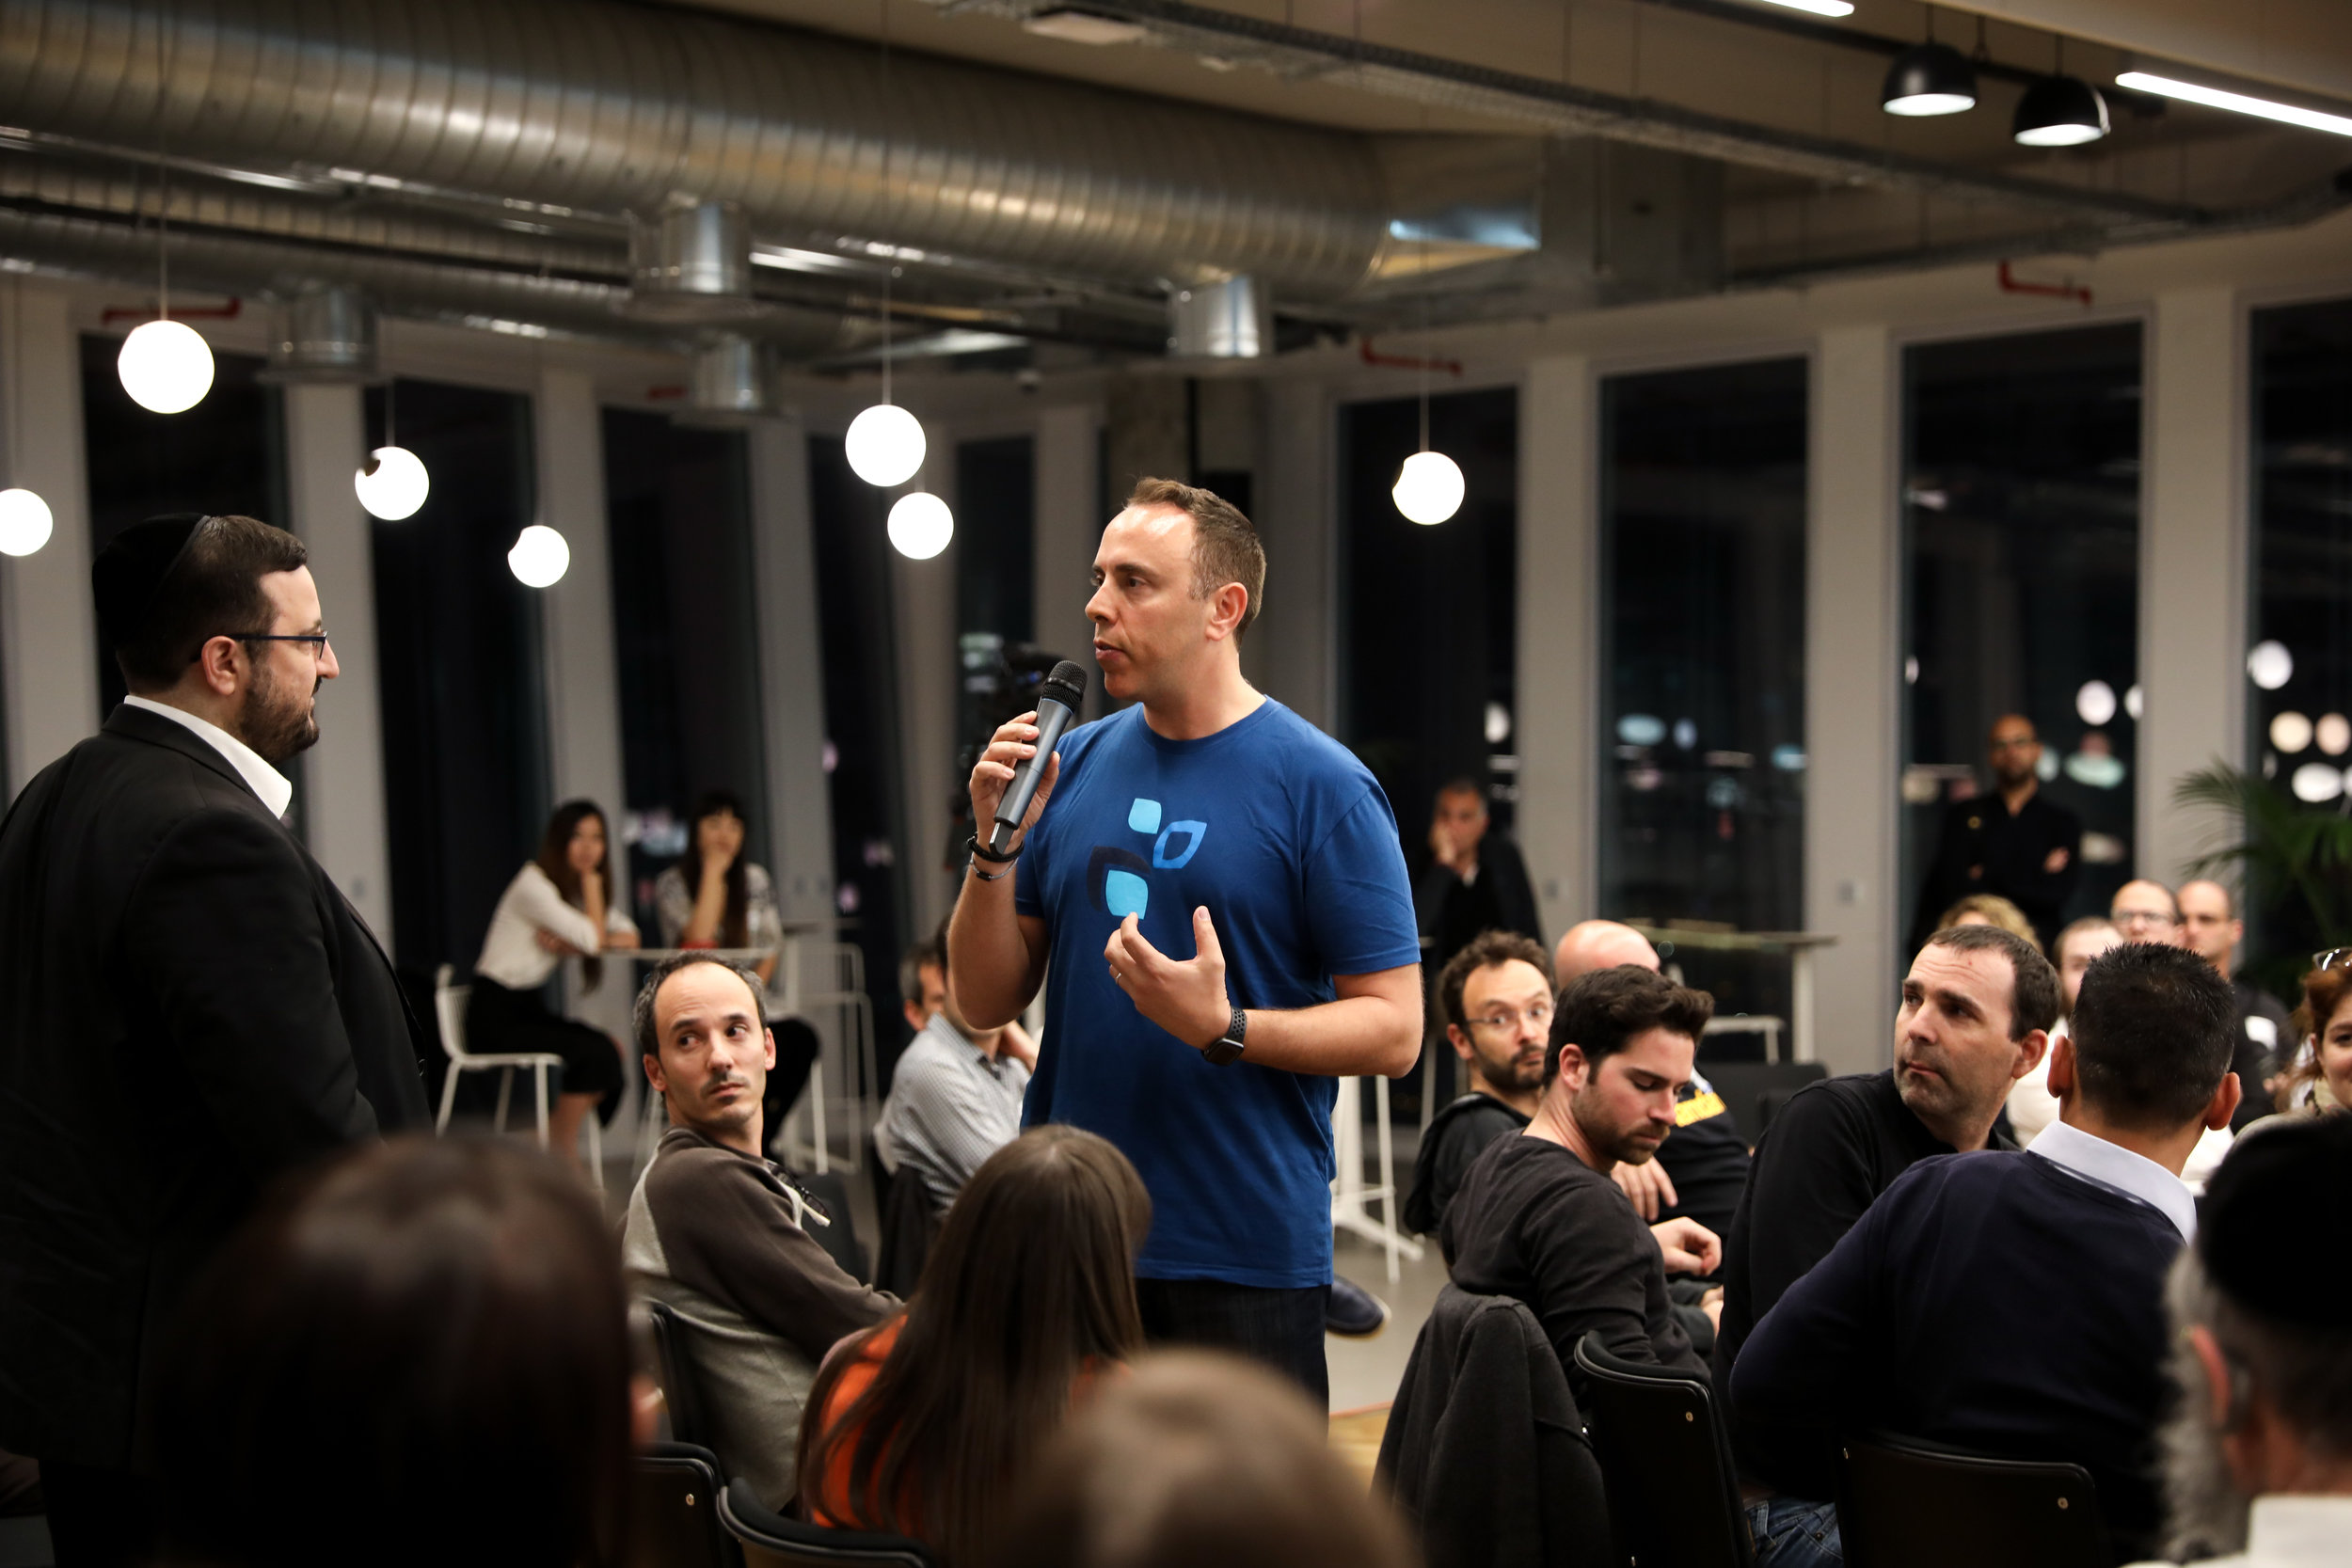 April 2019 TechAviv event in Tel Aviv.